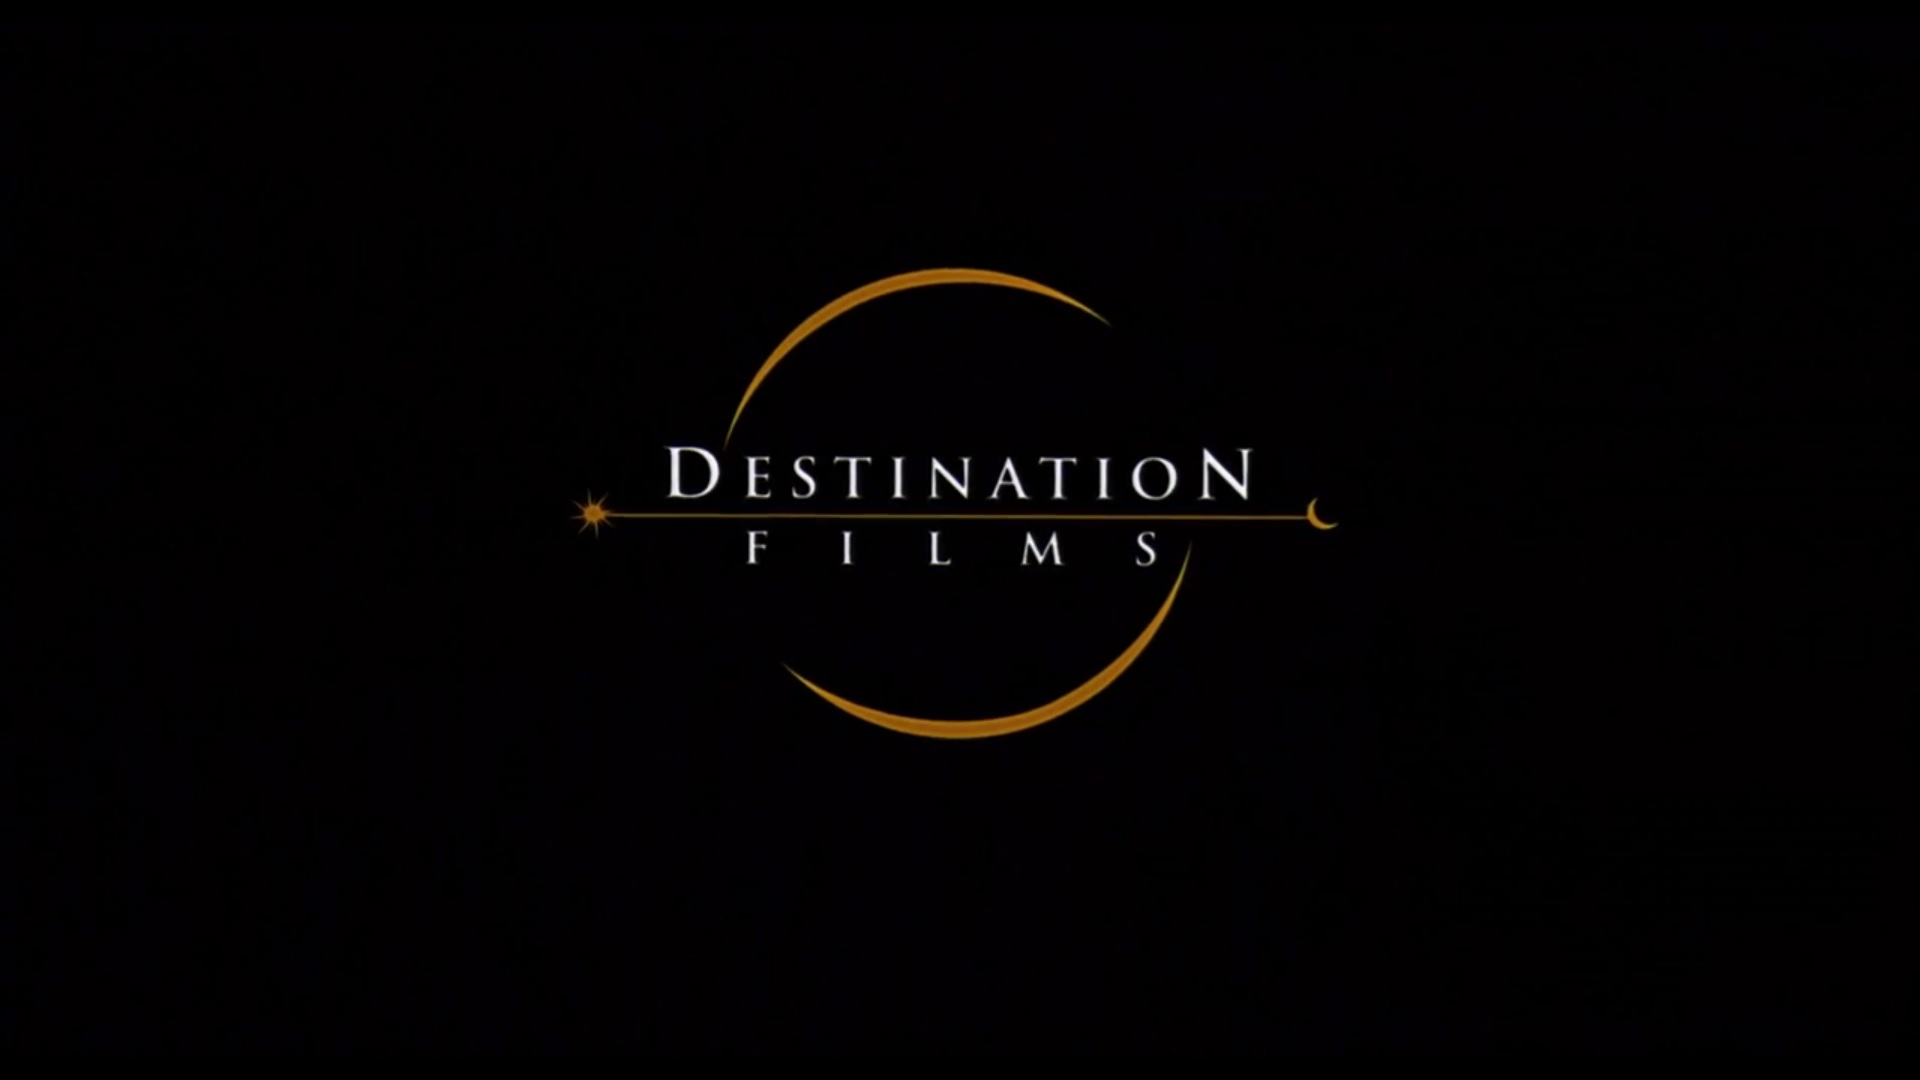 File:DestinationFilmslogo.jpg